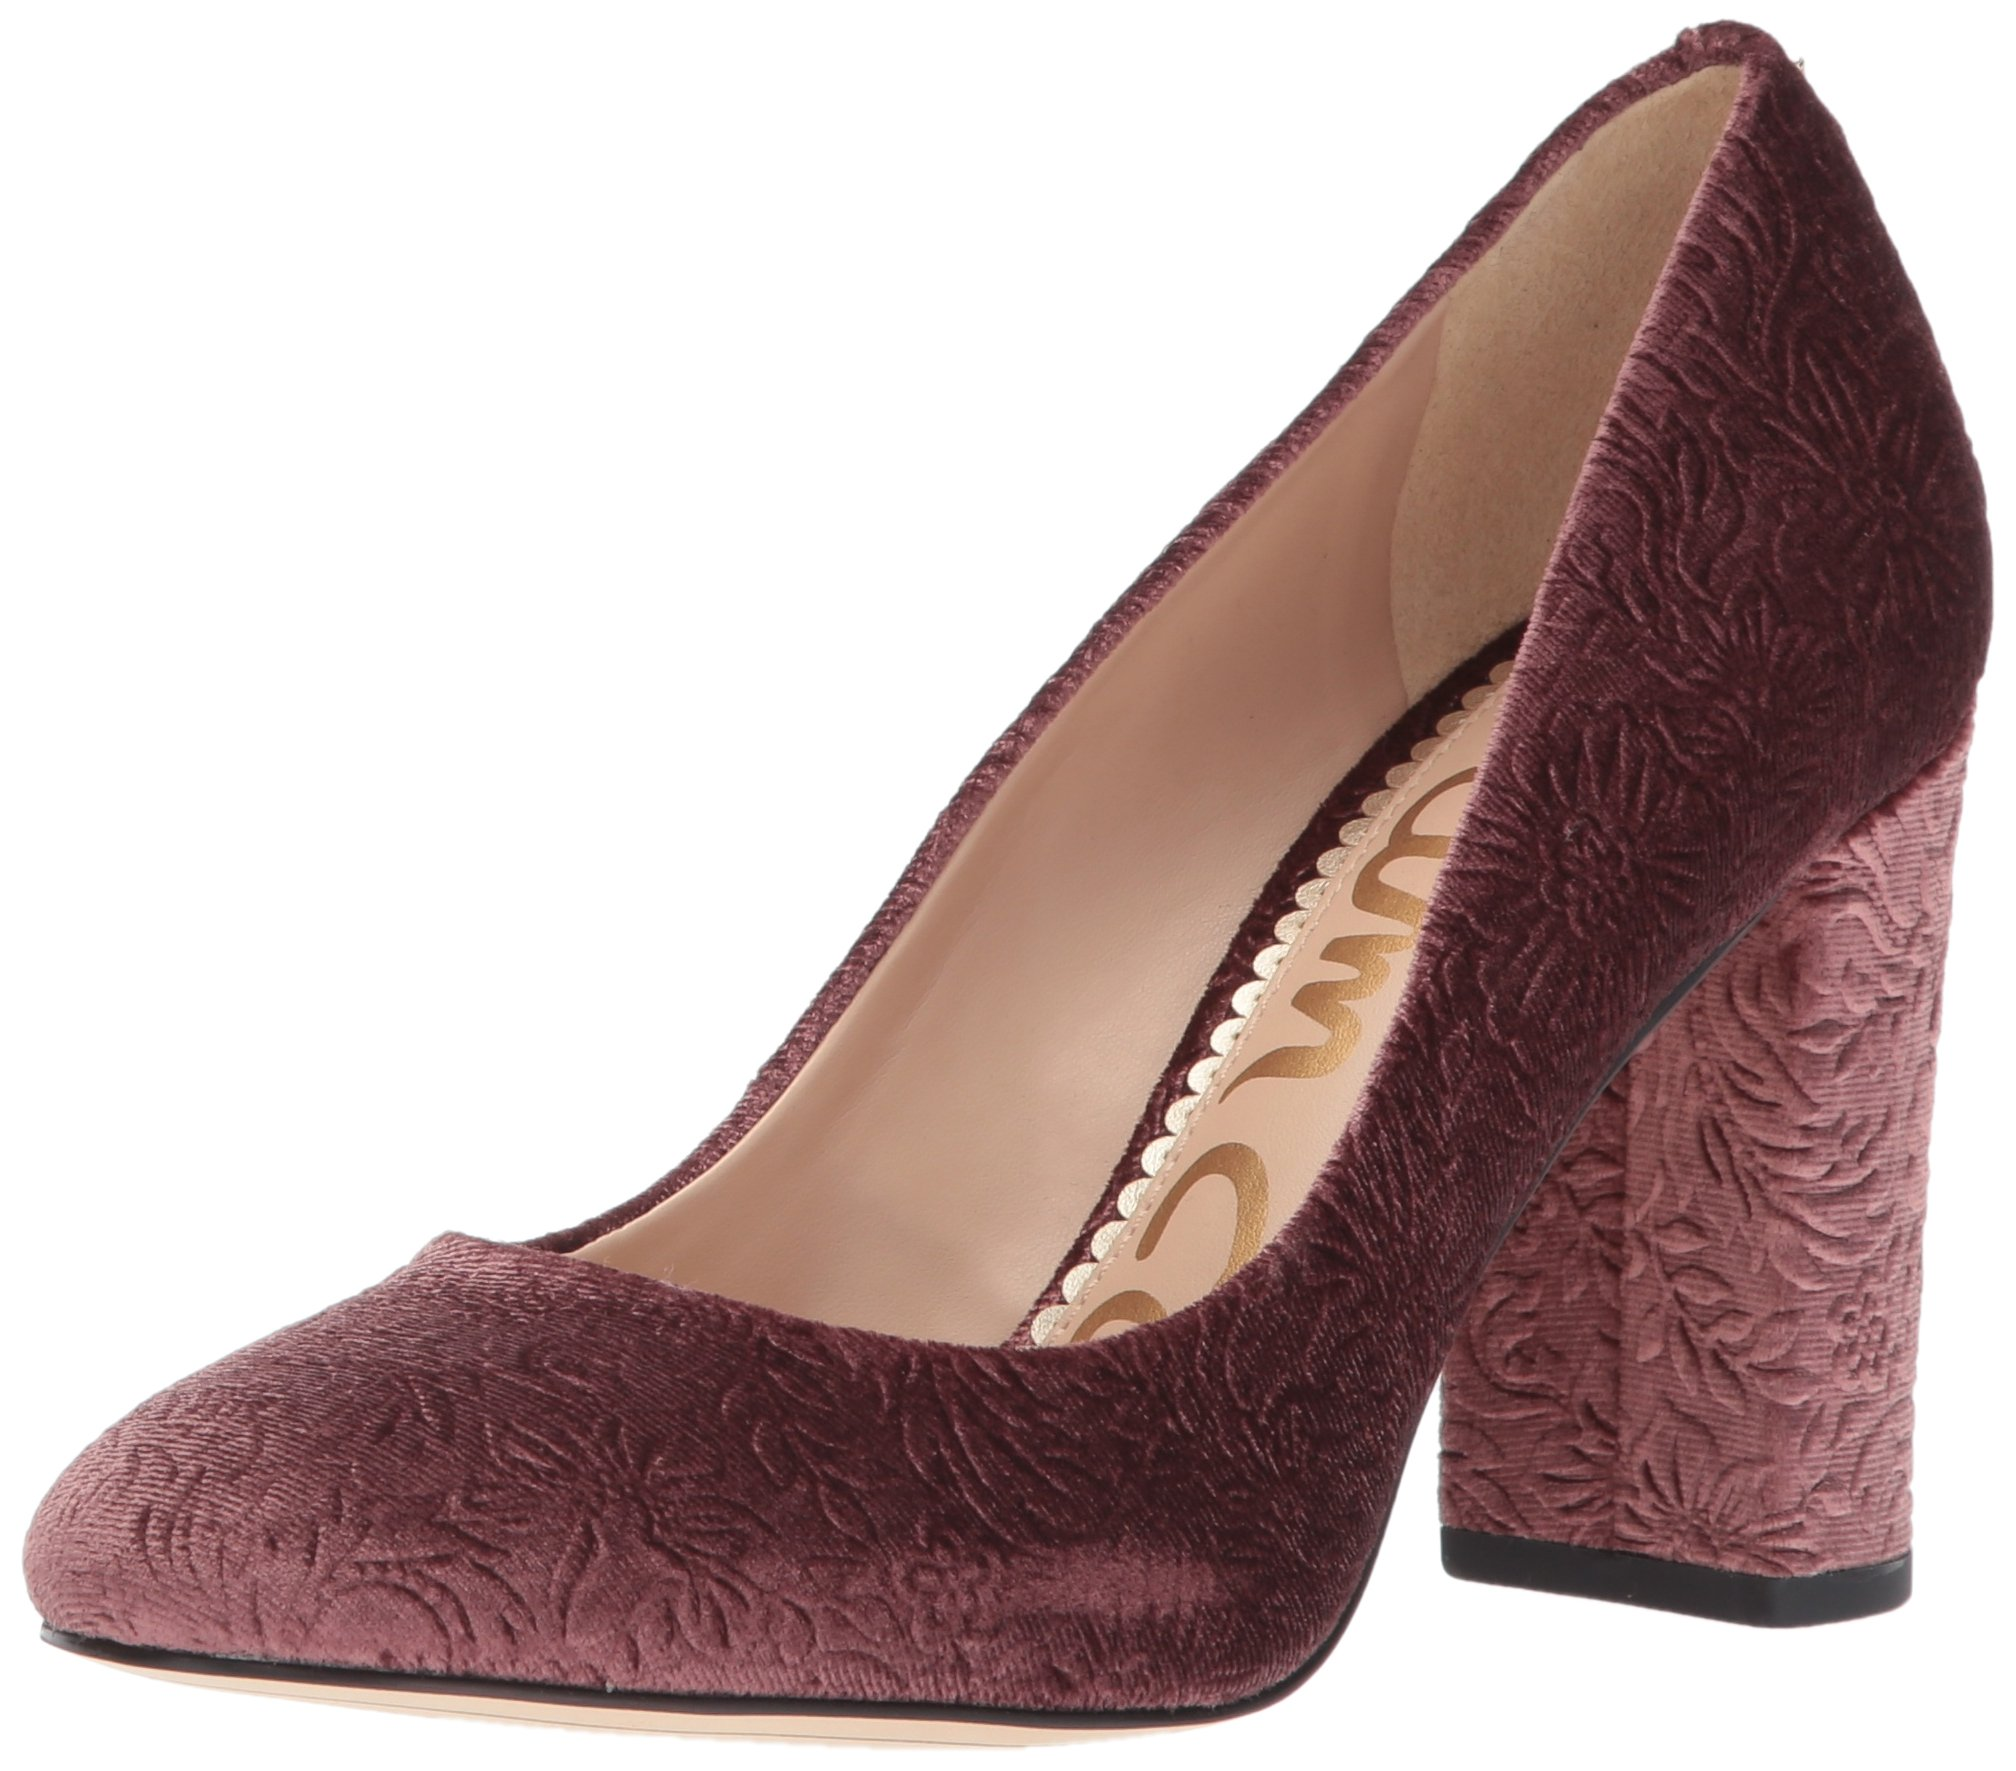 Sam Edelman Women's Stillson Pump, Mauve Wine Embossed Velvet, 9 Medium US